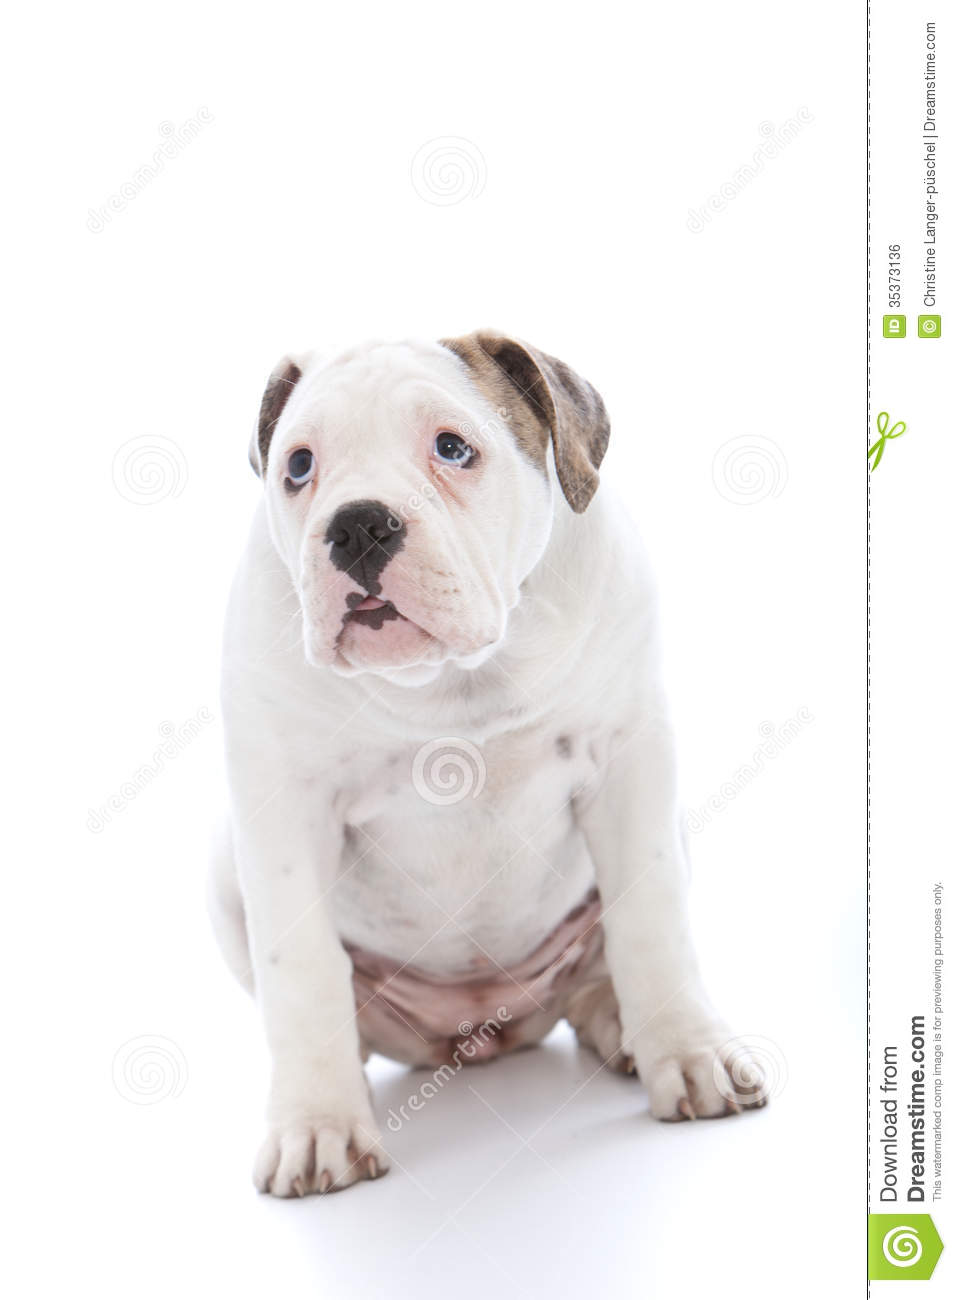 Dog With An Abject Expression Saying Sorry Stock Photo - Image of